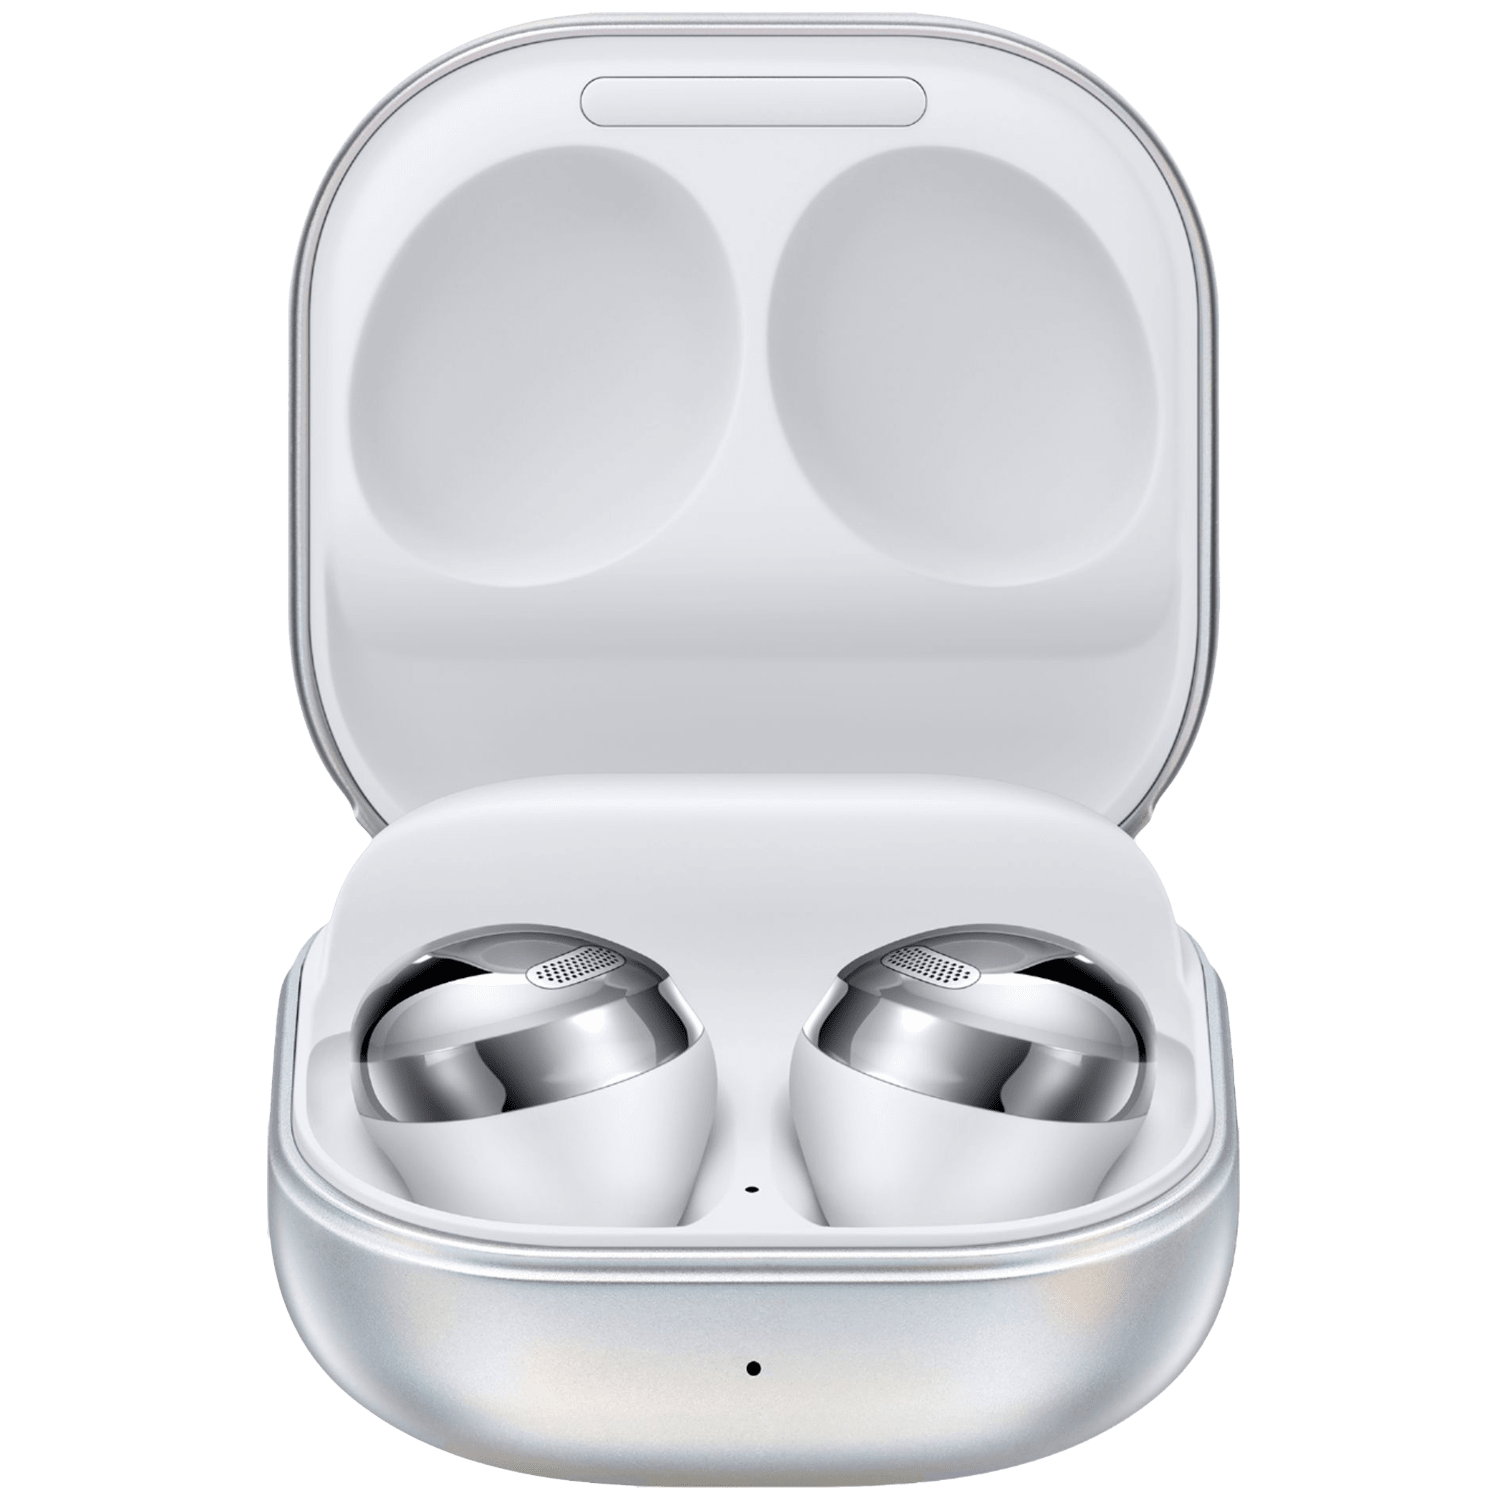 Samsung Galaxy Buds Pro In-Ear Truly Wireless Earbuds with Mic (Bluetooth 5.0, Bixby Supported, SM-R190NZSAINU, Phantom Silver)